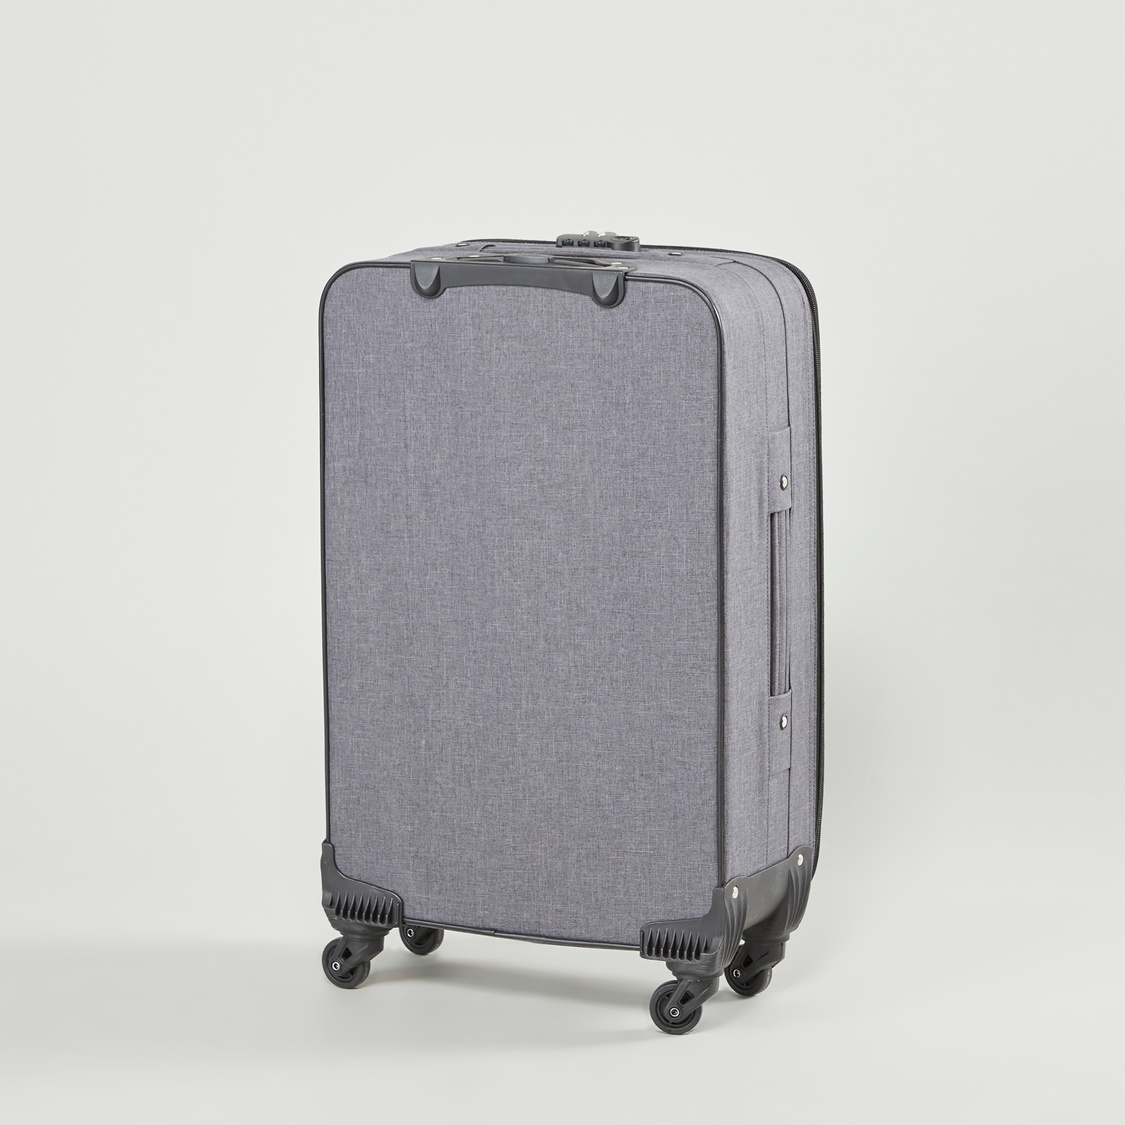 Textured Soft Case Trolley Bag with Swivel Wheels